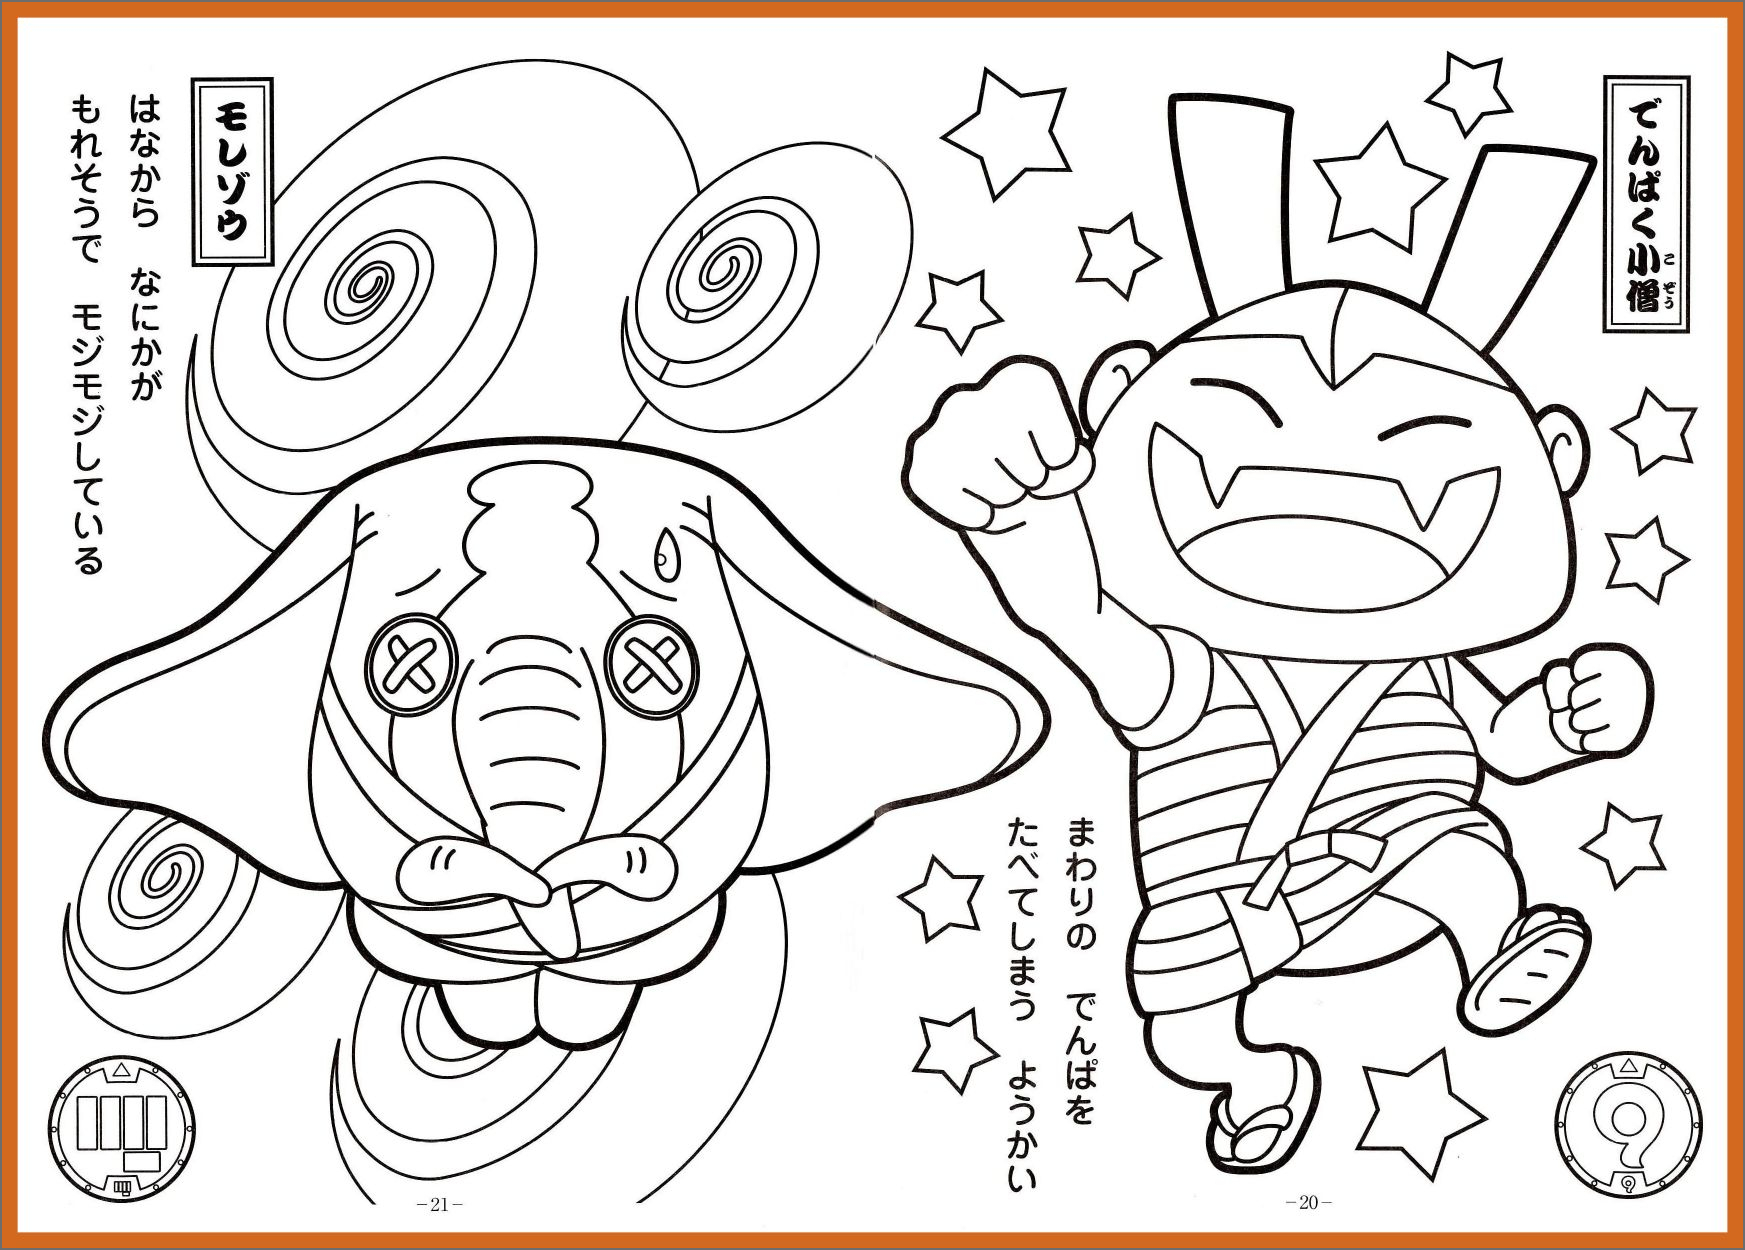 Yo Kai Watch Coloring Pages  to Print 4l - Free For Children